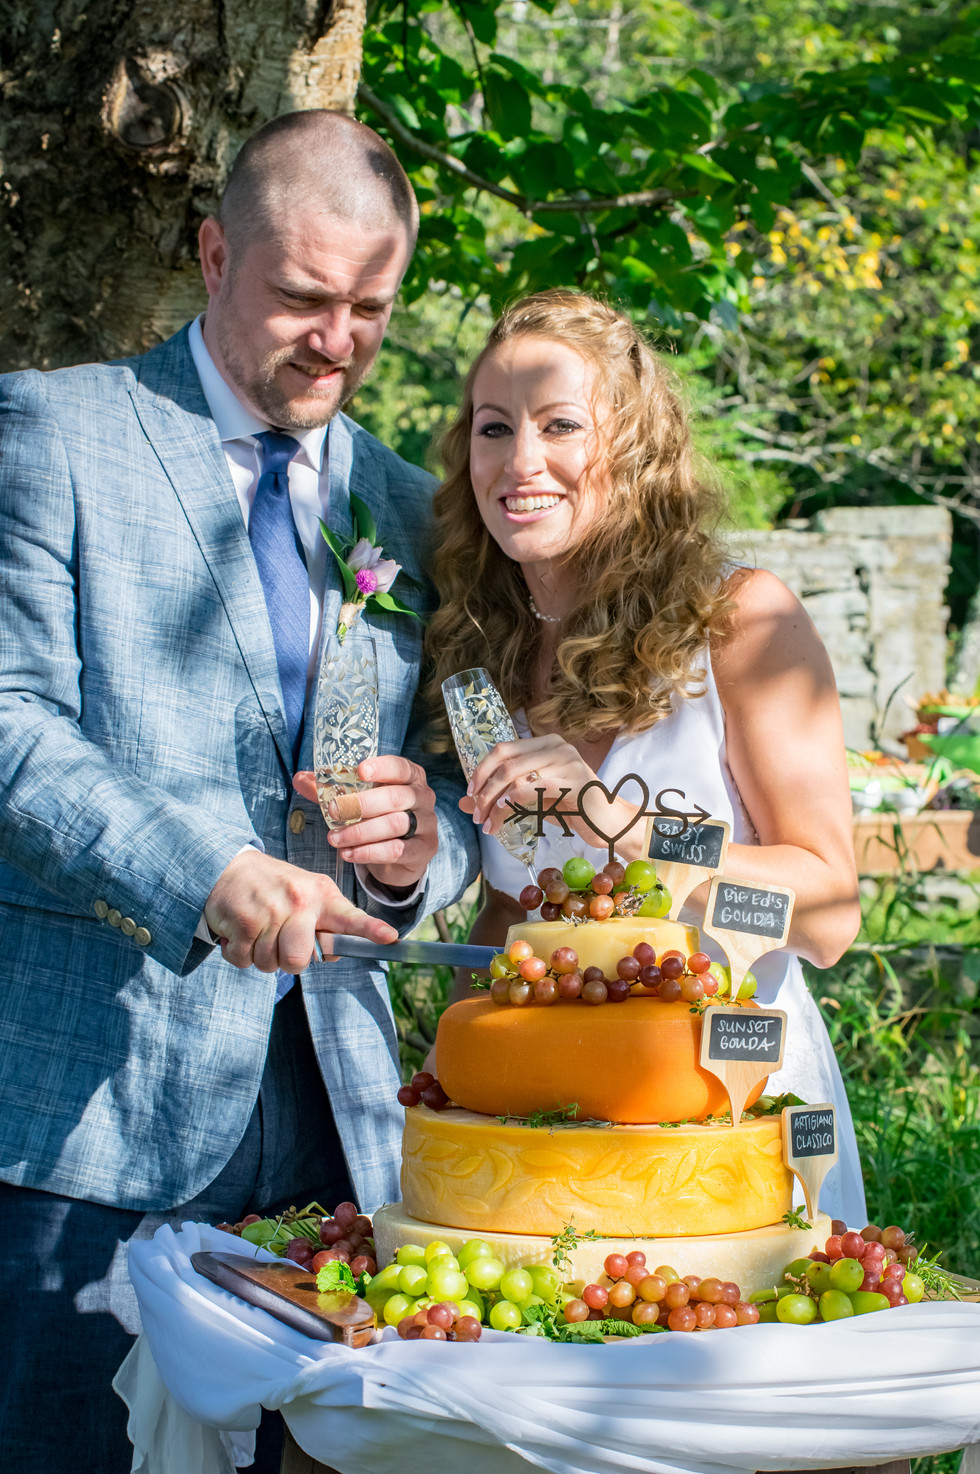 Our Wedding Cheese Tower Story